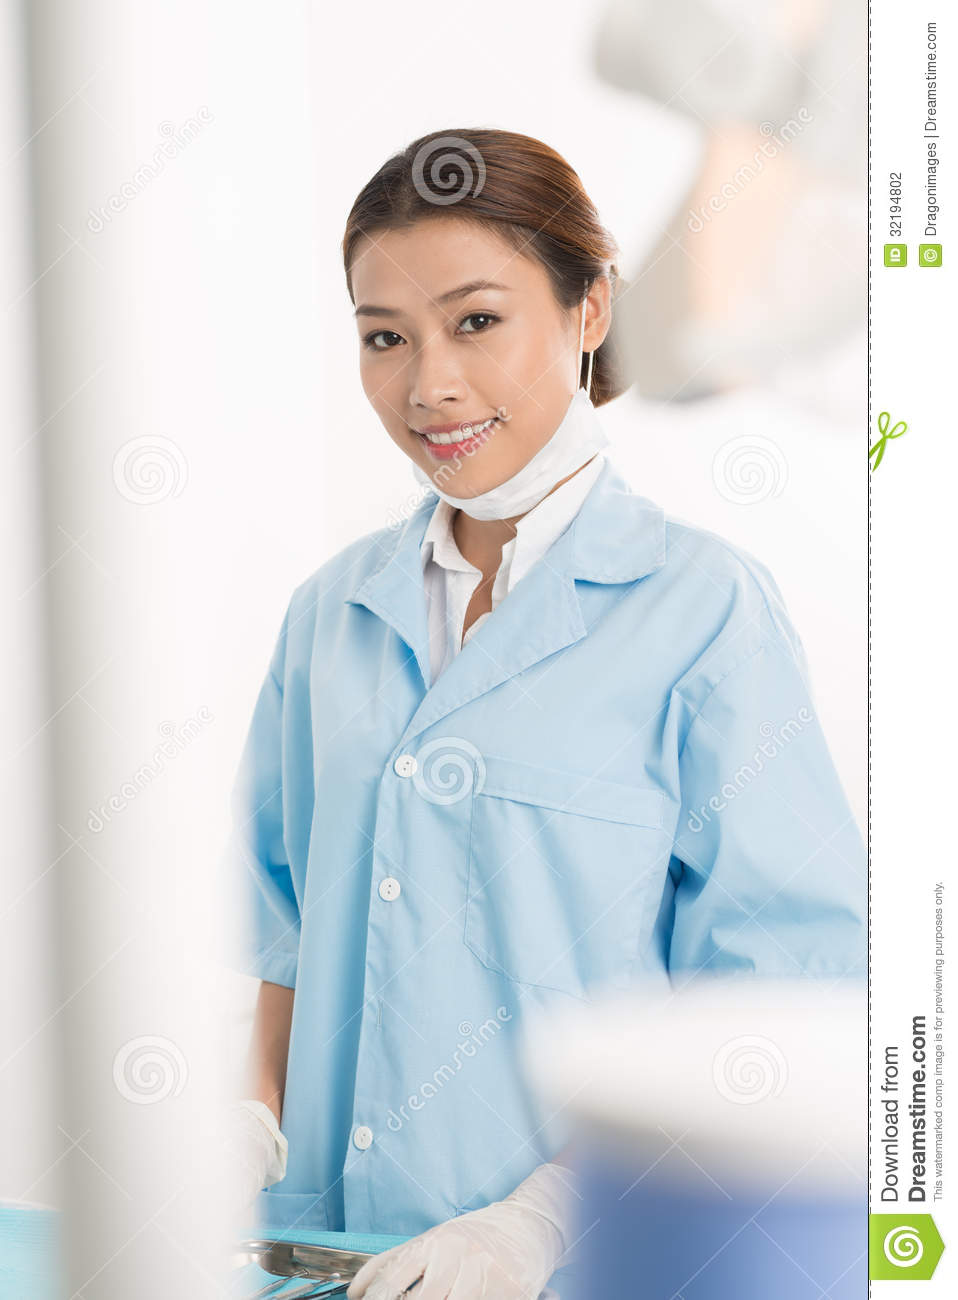 Vertical Portrait Of Pretty 14 Year Old Girl Stock Image: Young Intern Stock Photo. Image Of Looking, Gloved, Glance